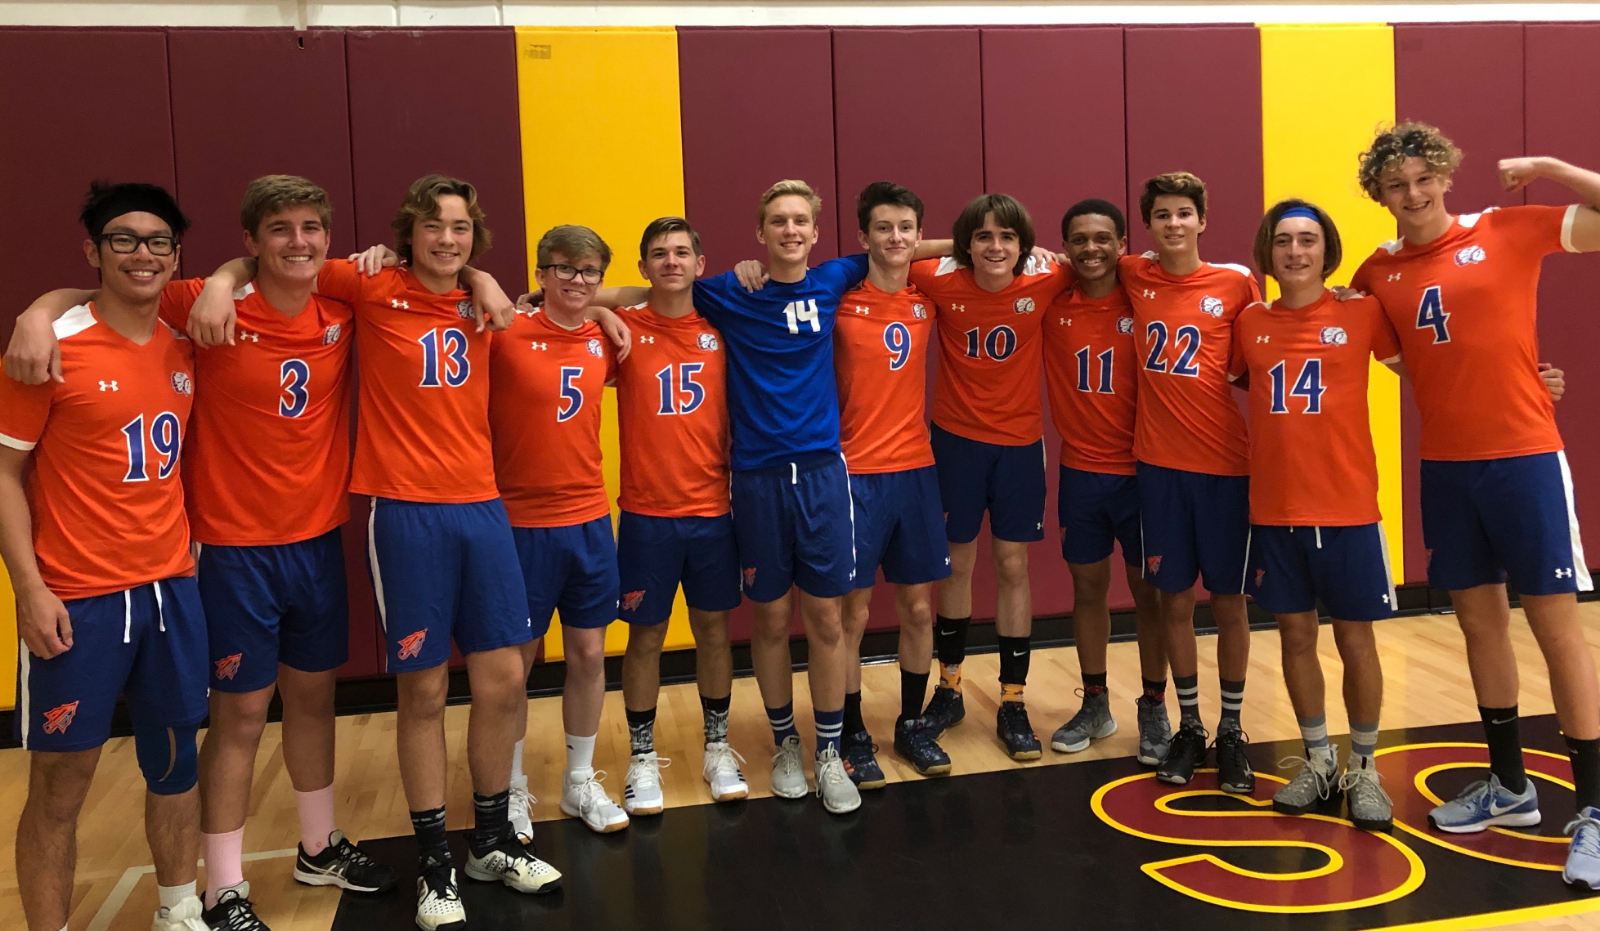 Congrats to Boys Varsity Volleyball at the Sweetwater Tournament